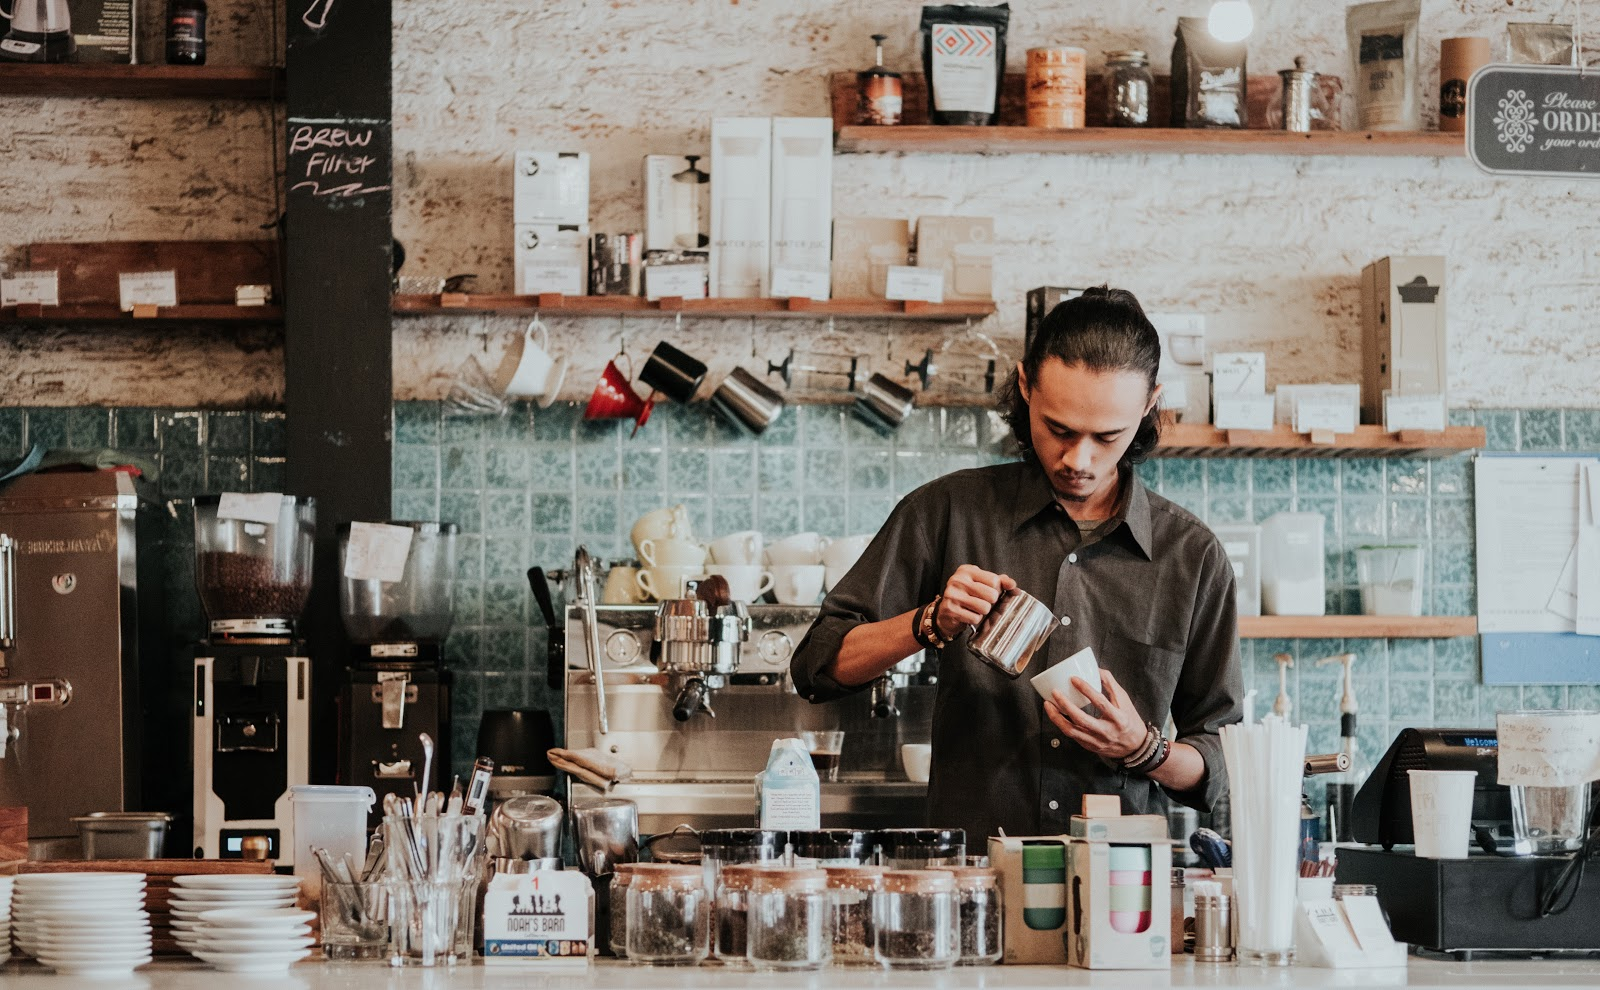 An Asian Barista making coffee